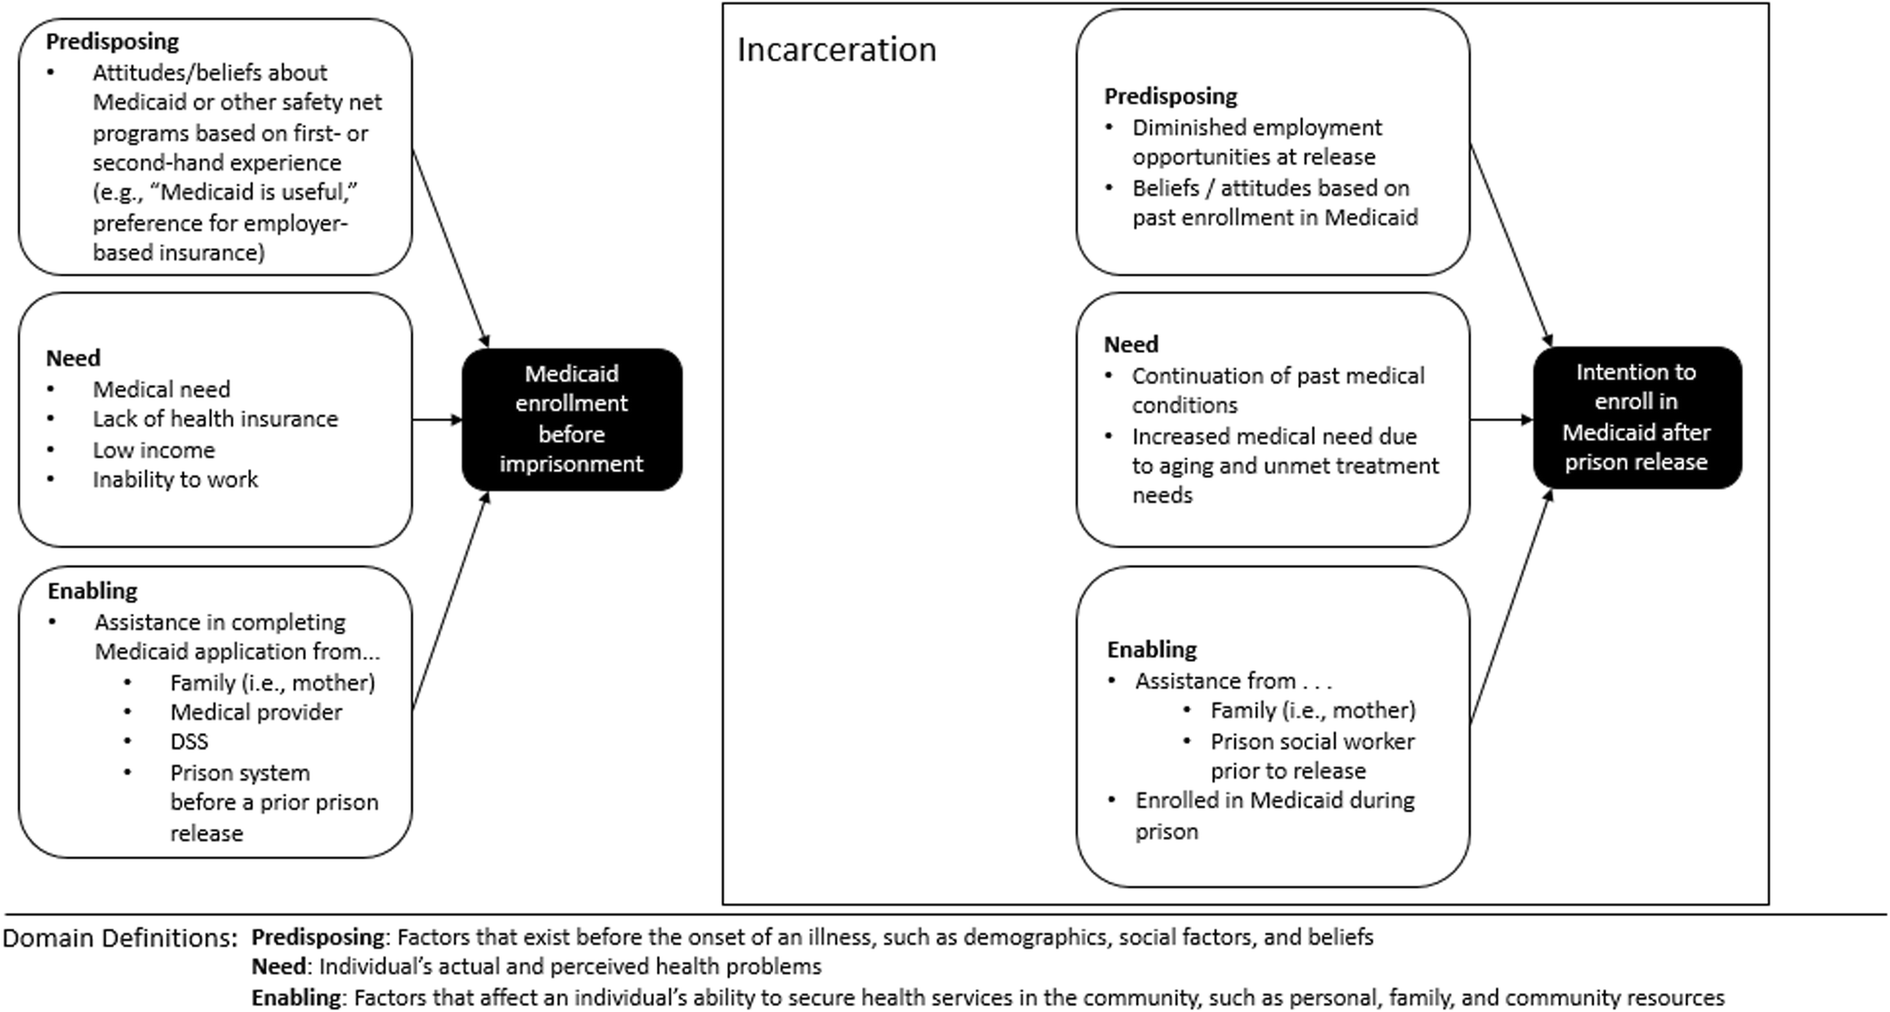 Medicaid Enrollment among Prison Inmates in a Non-expansion